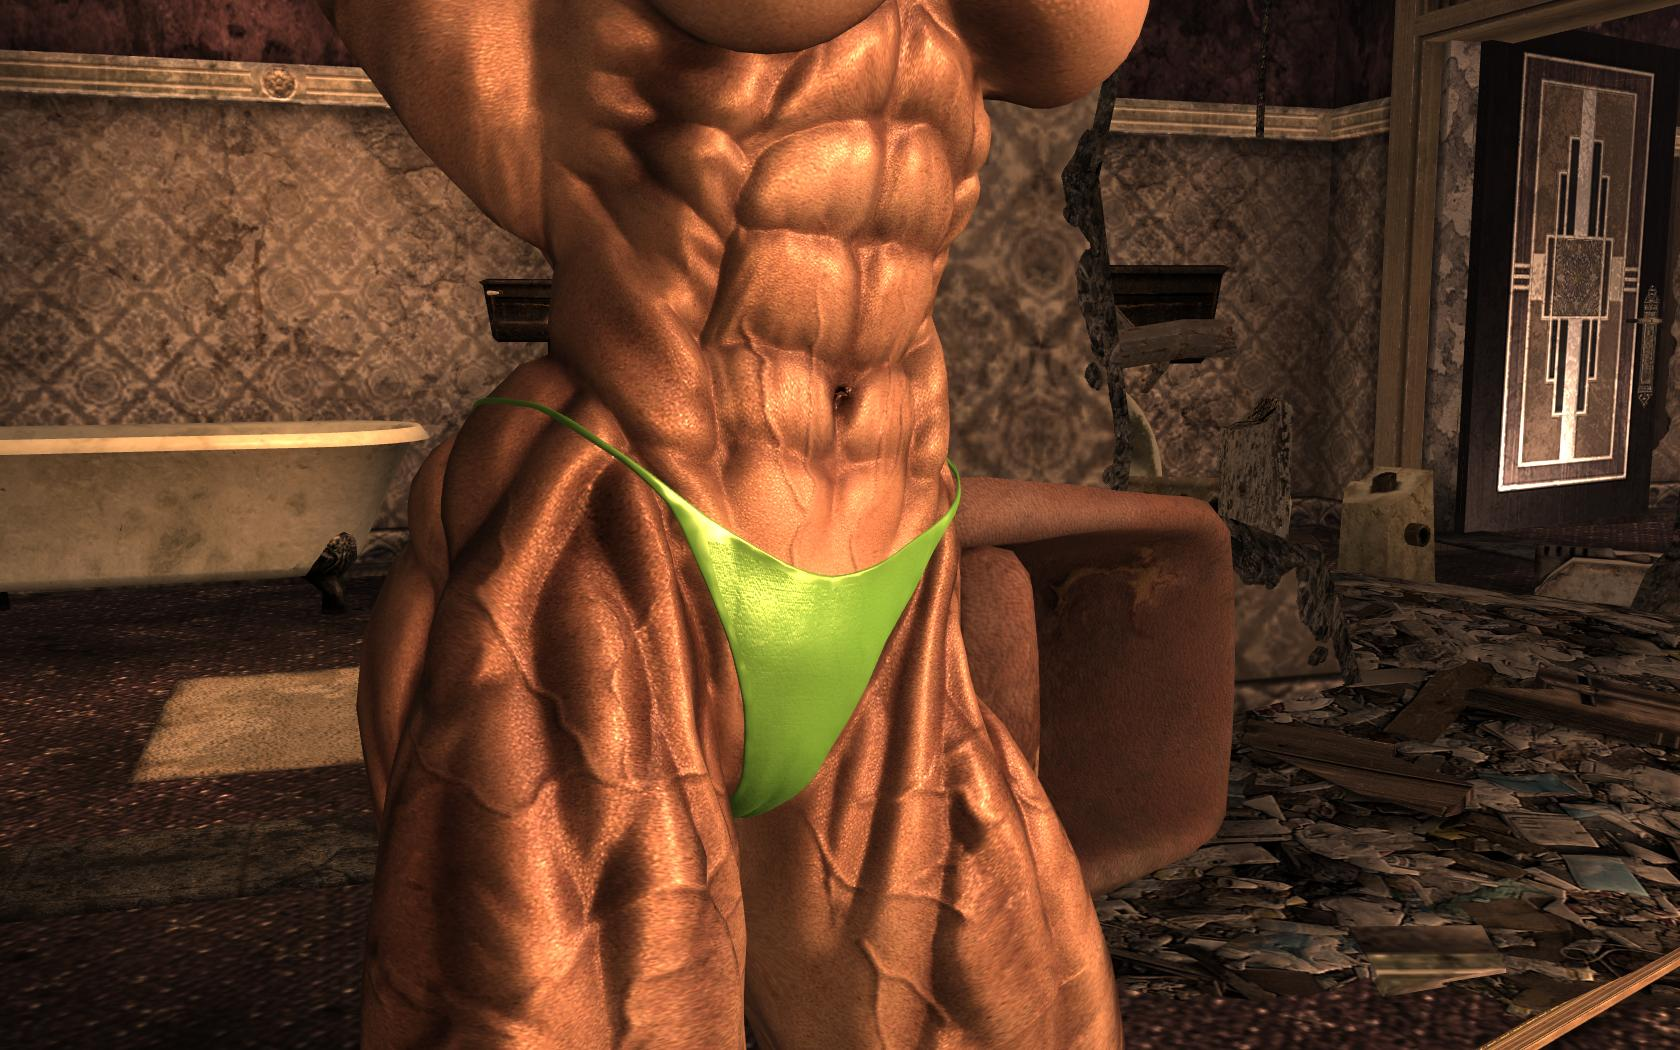 Fallout new vegas gomorrah animated sex mod nude scenes